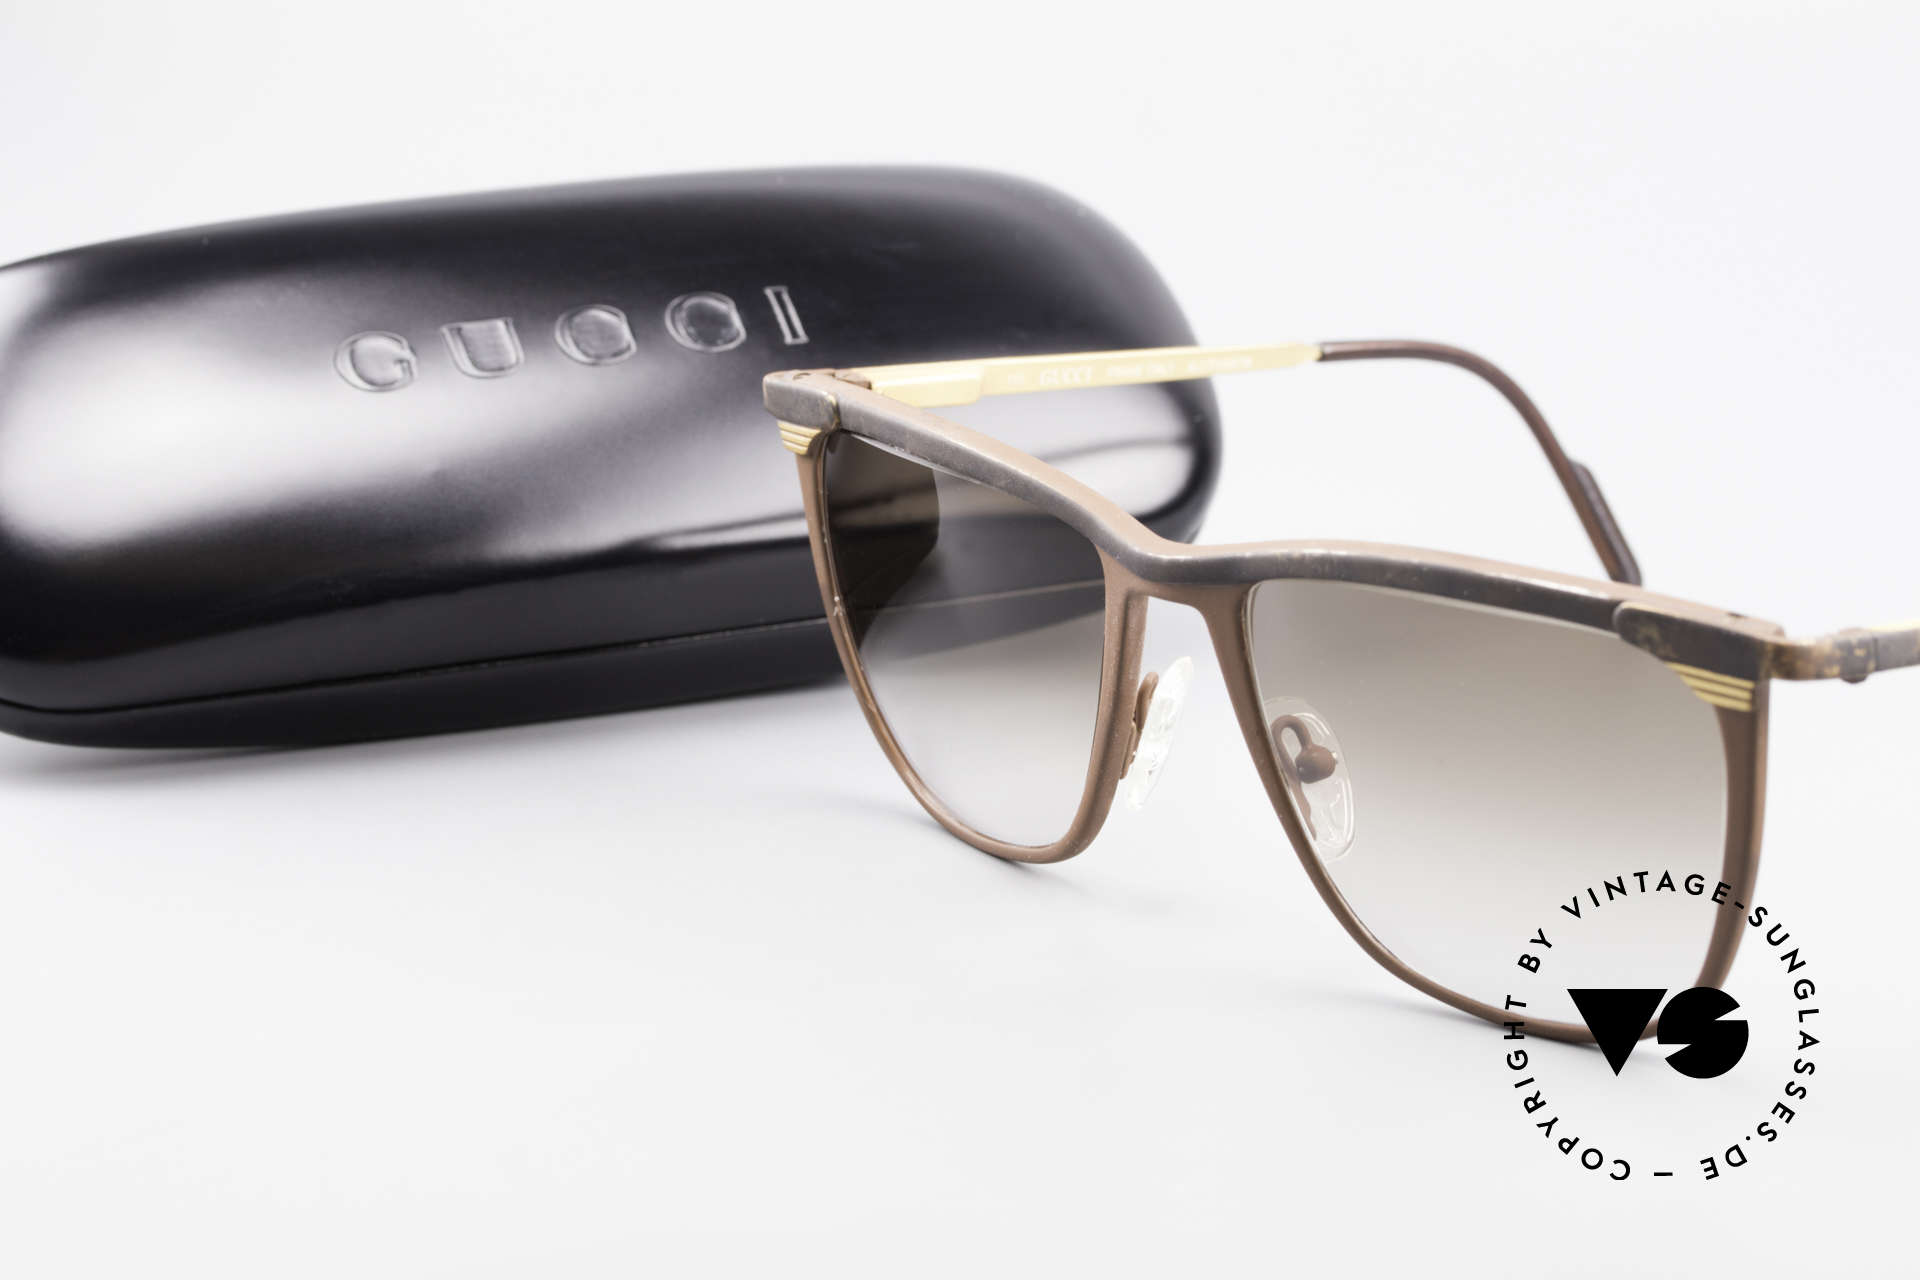 Gucci 2227 Luxury Designer Sunglasses, Size: large, Made for Men and Women